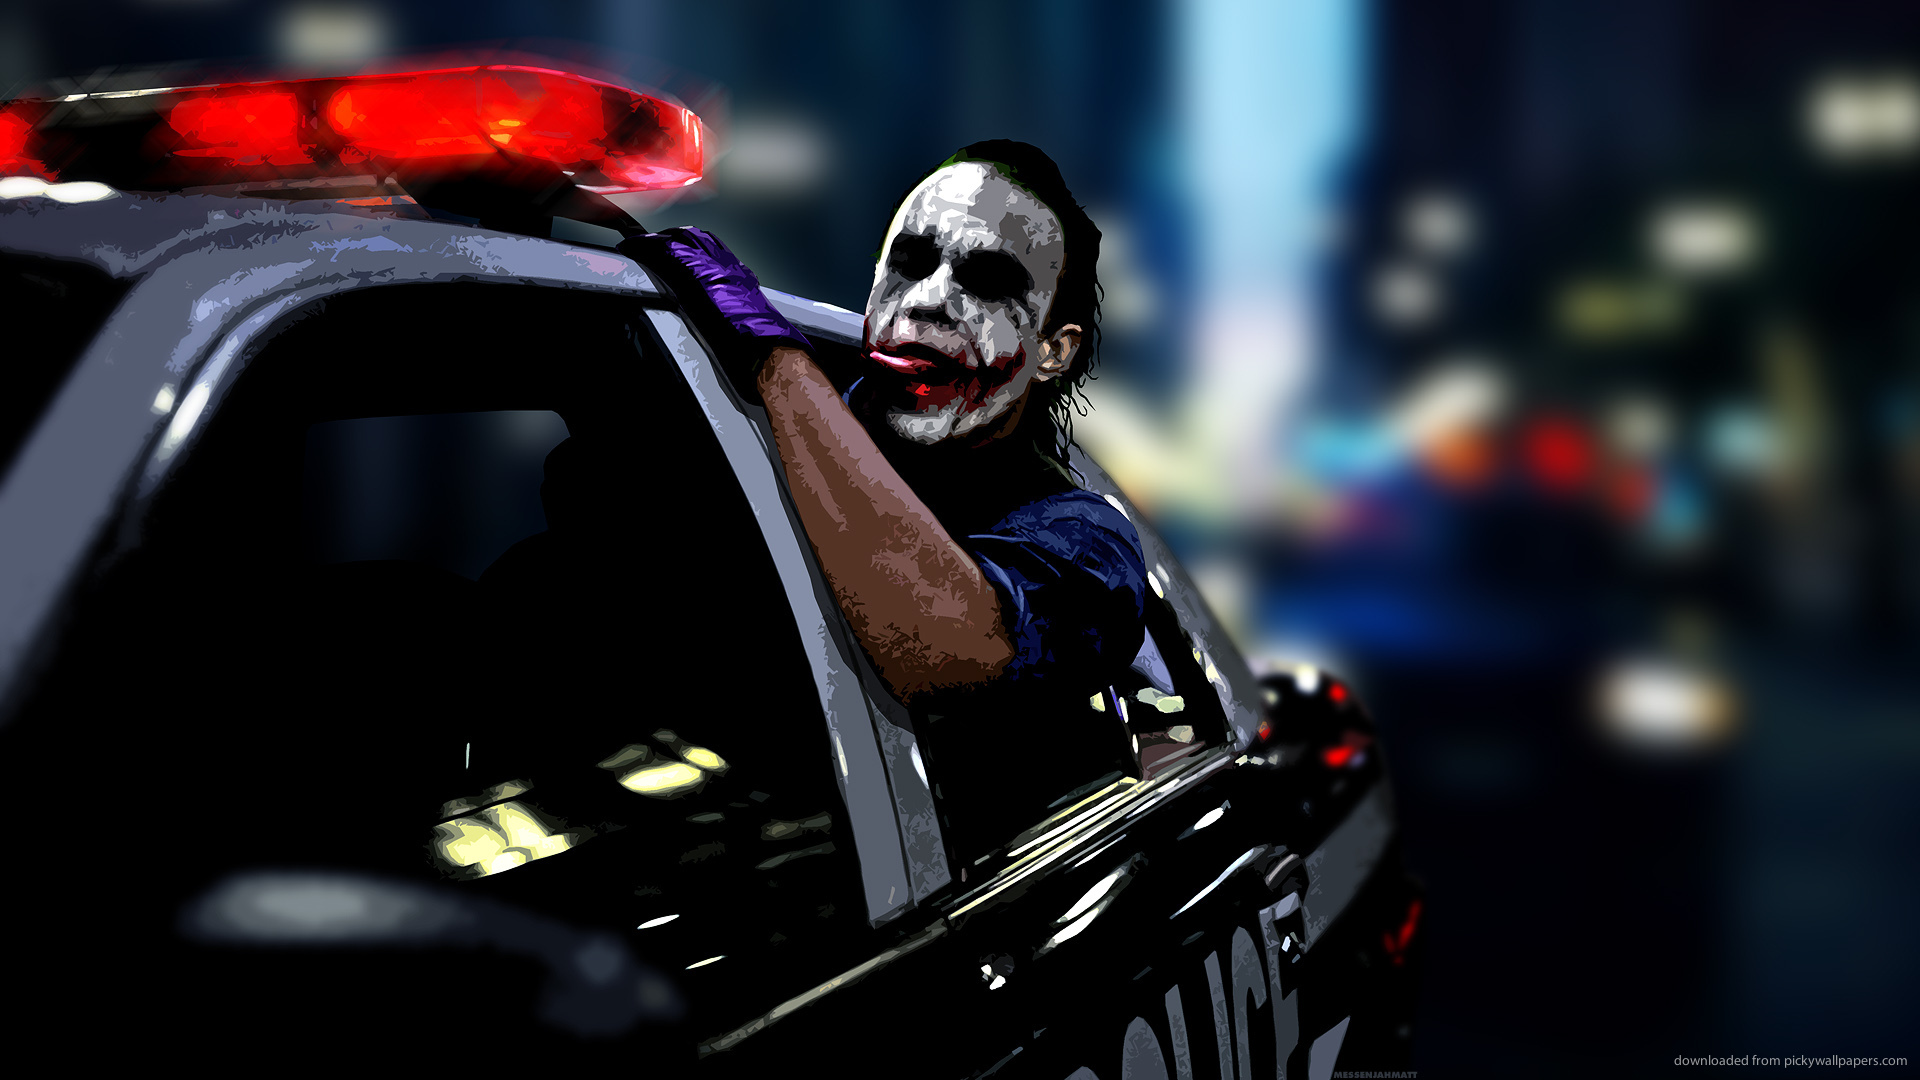 wallpaper.pickywallpapers.com/1920x1080/joker-driving-in-a-police-car ...